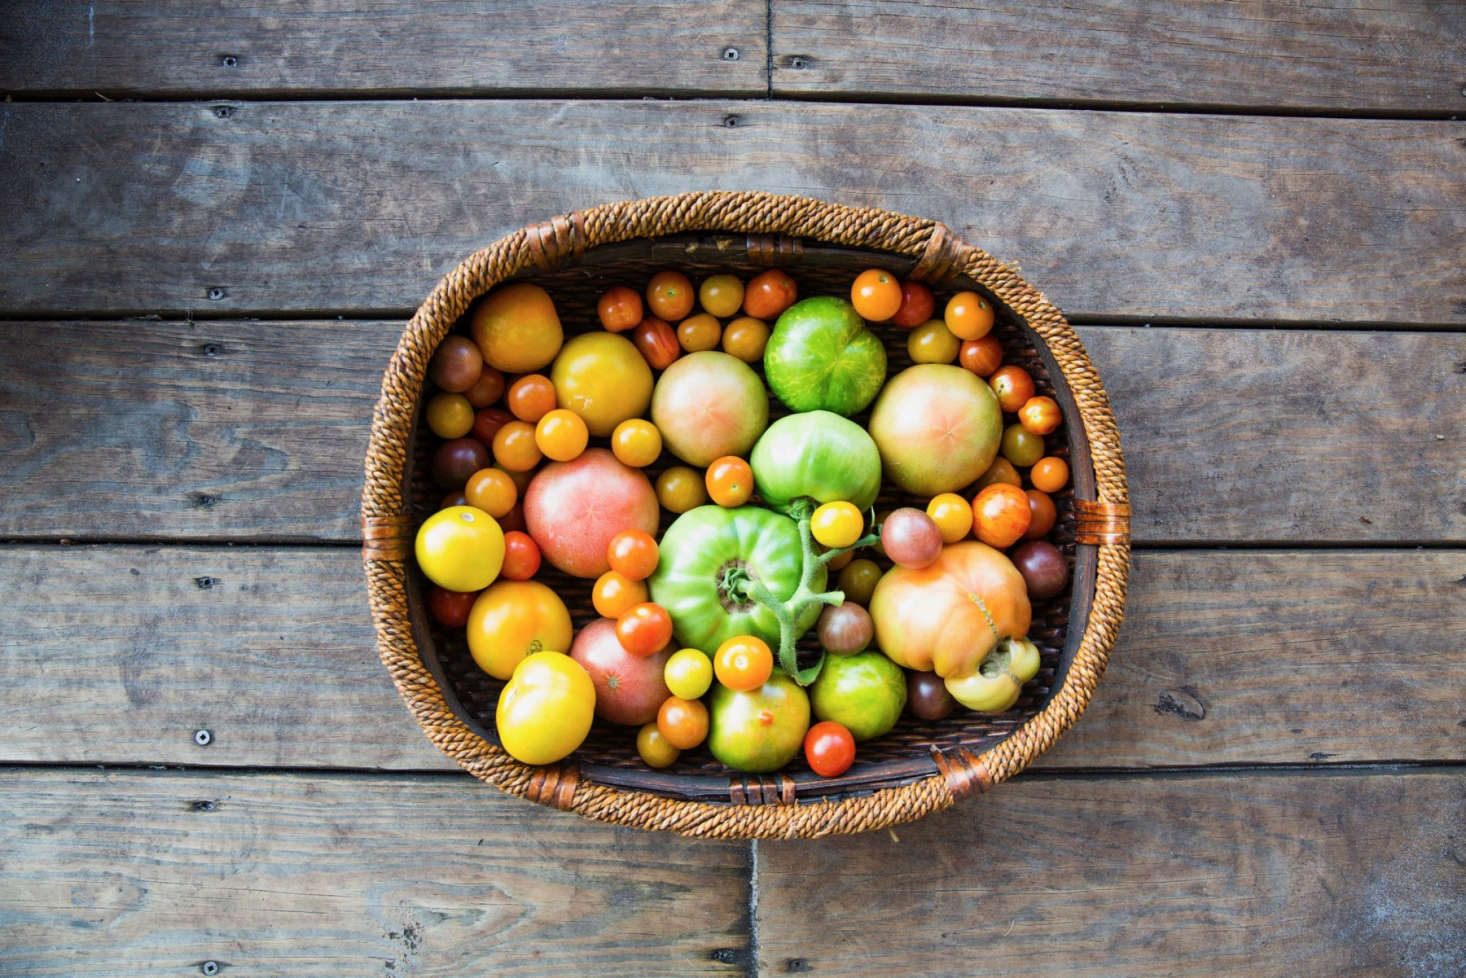 A harvest of cherry and heirloom tomatoes from Greyfield Inn on Cumberland Island. Photograph byGabe Hanway, fromGreyfield Gardens: A Chef's Dream on a Remote Georgia Island. For more on hybrid versus heirloom tomatoes, seeEverything You Need to Know About Tomatoes.